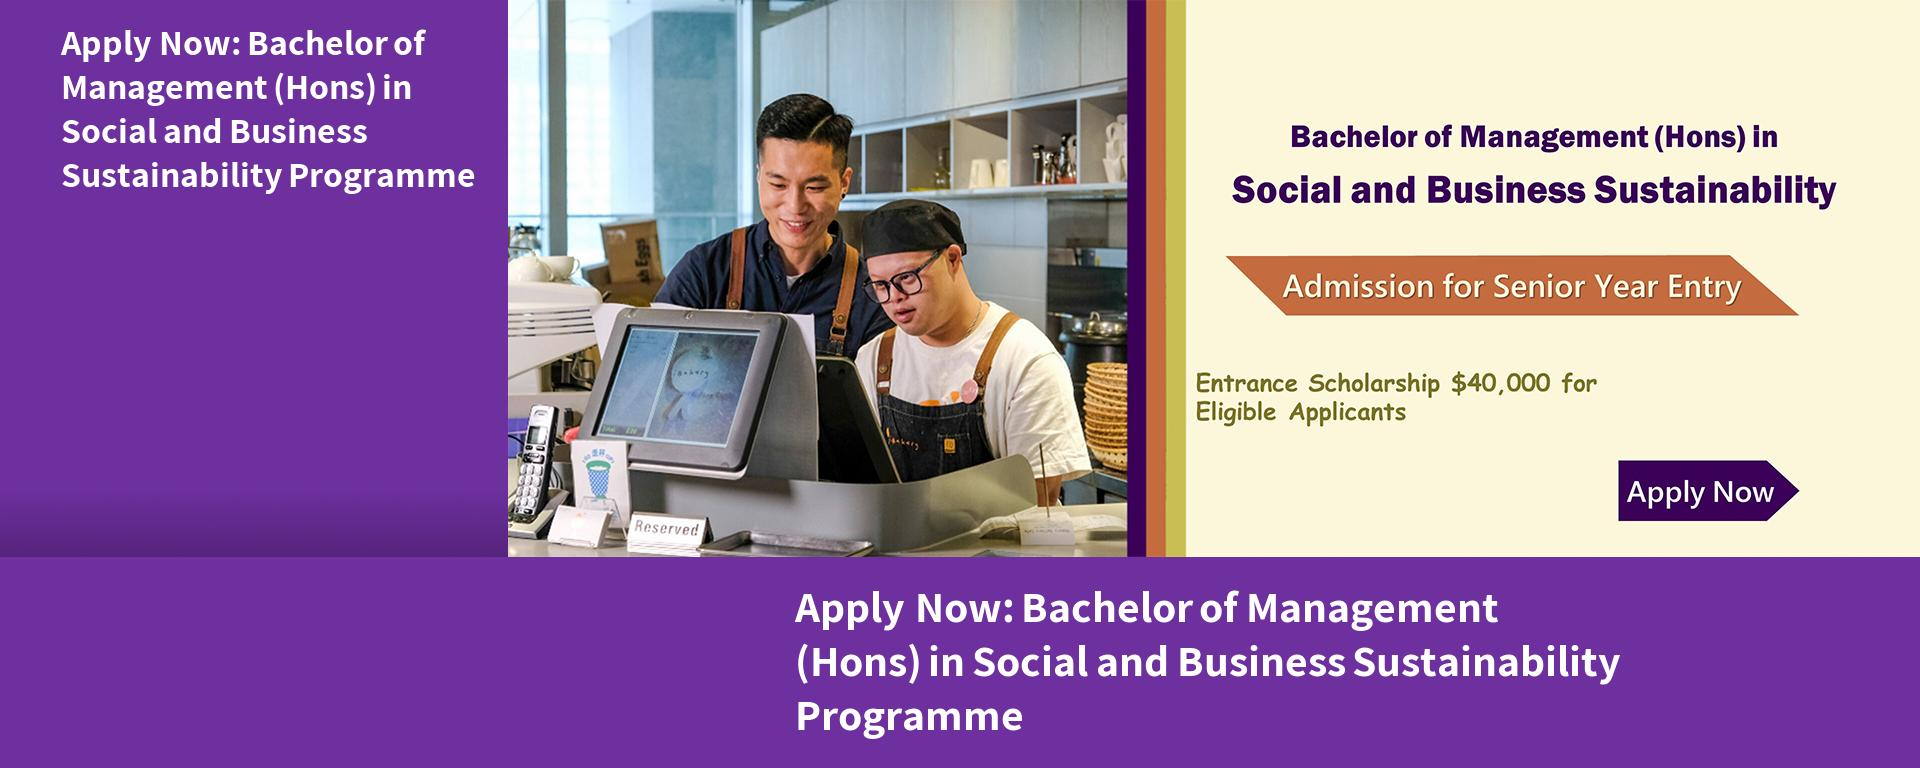 Apply Now: Bachelor of Management (Hons) in Social and Business Sustainability Programme